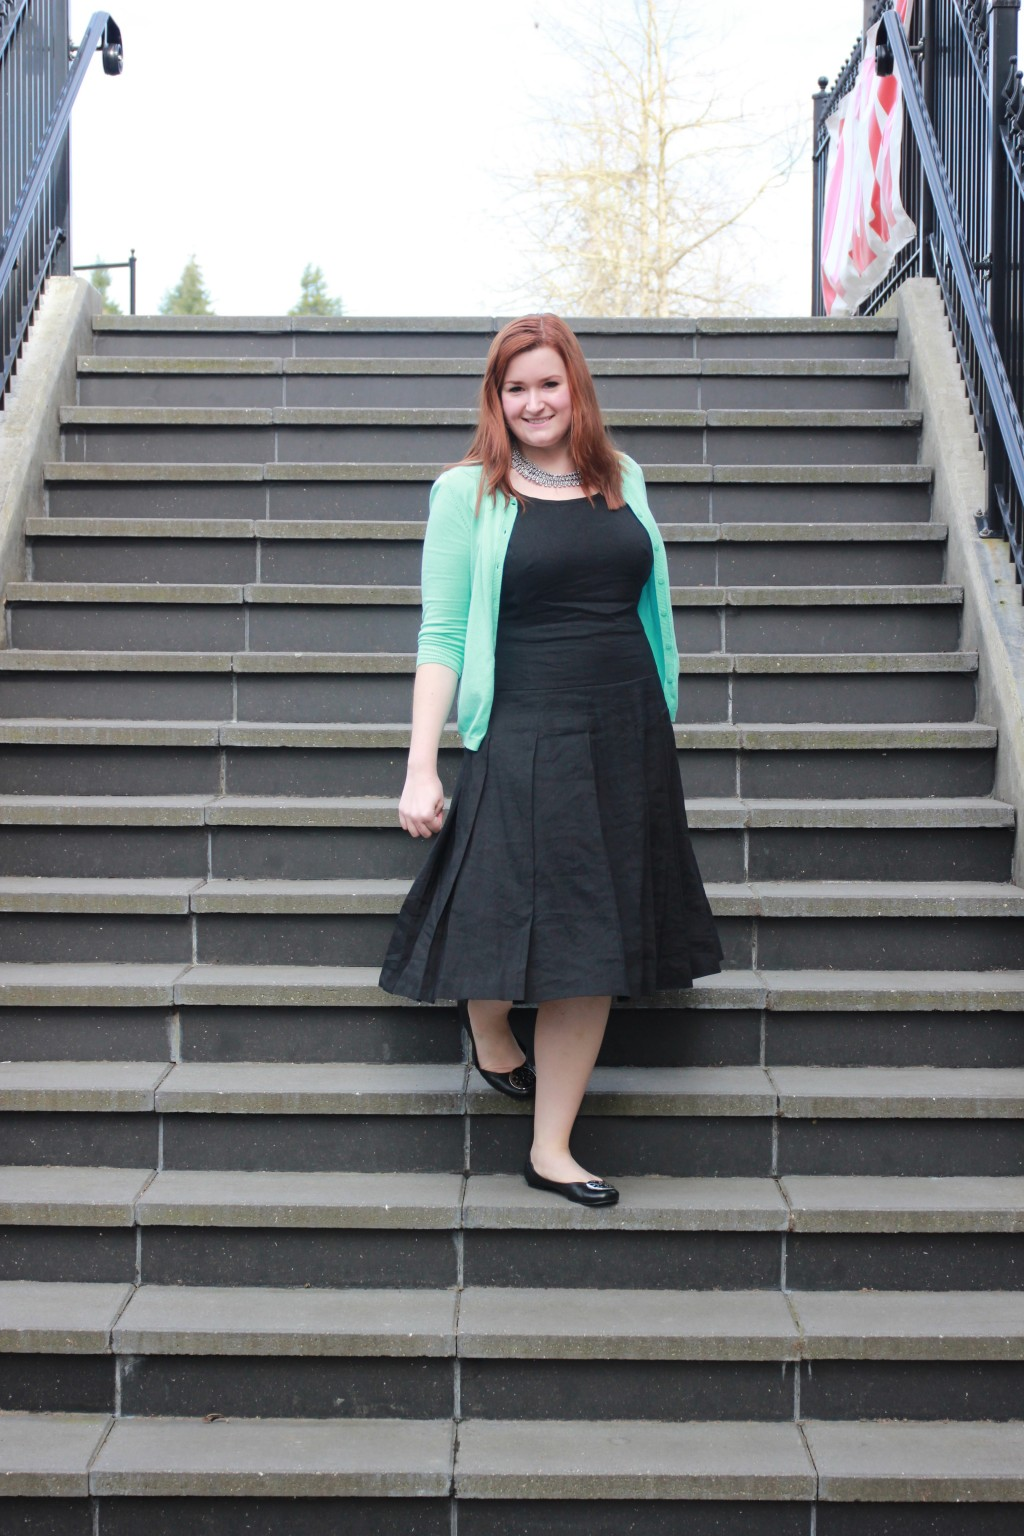 Kate Retherford, Snohomish based Style Blogger